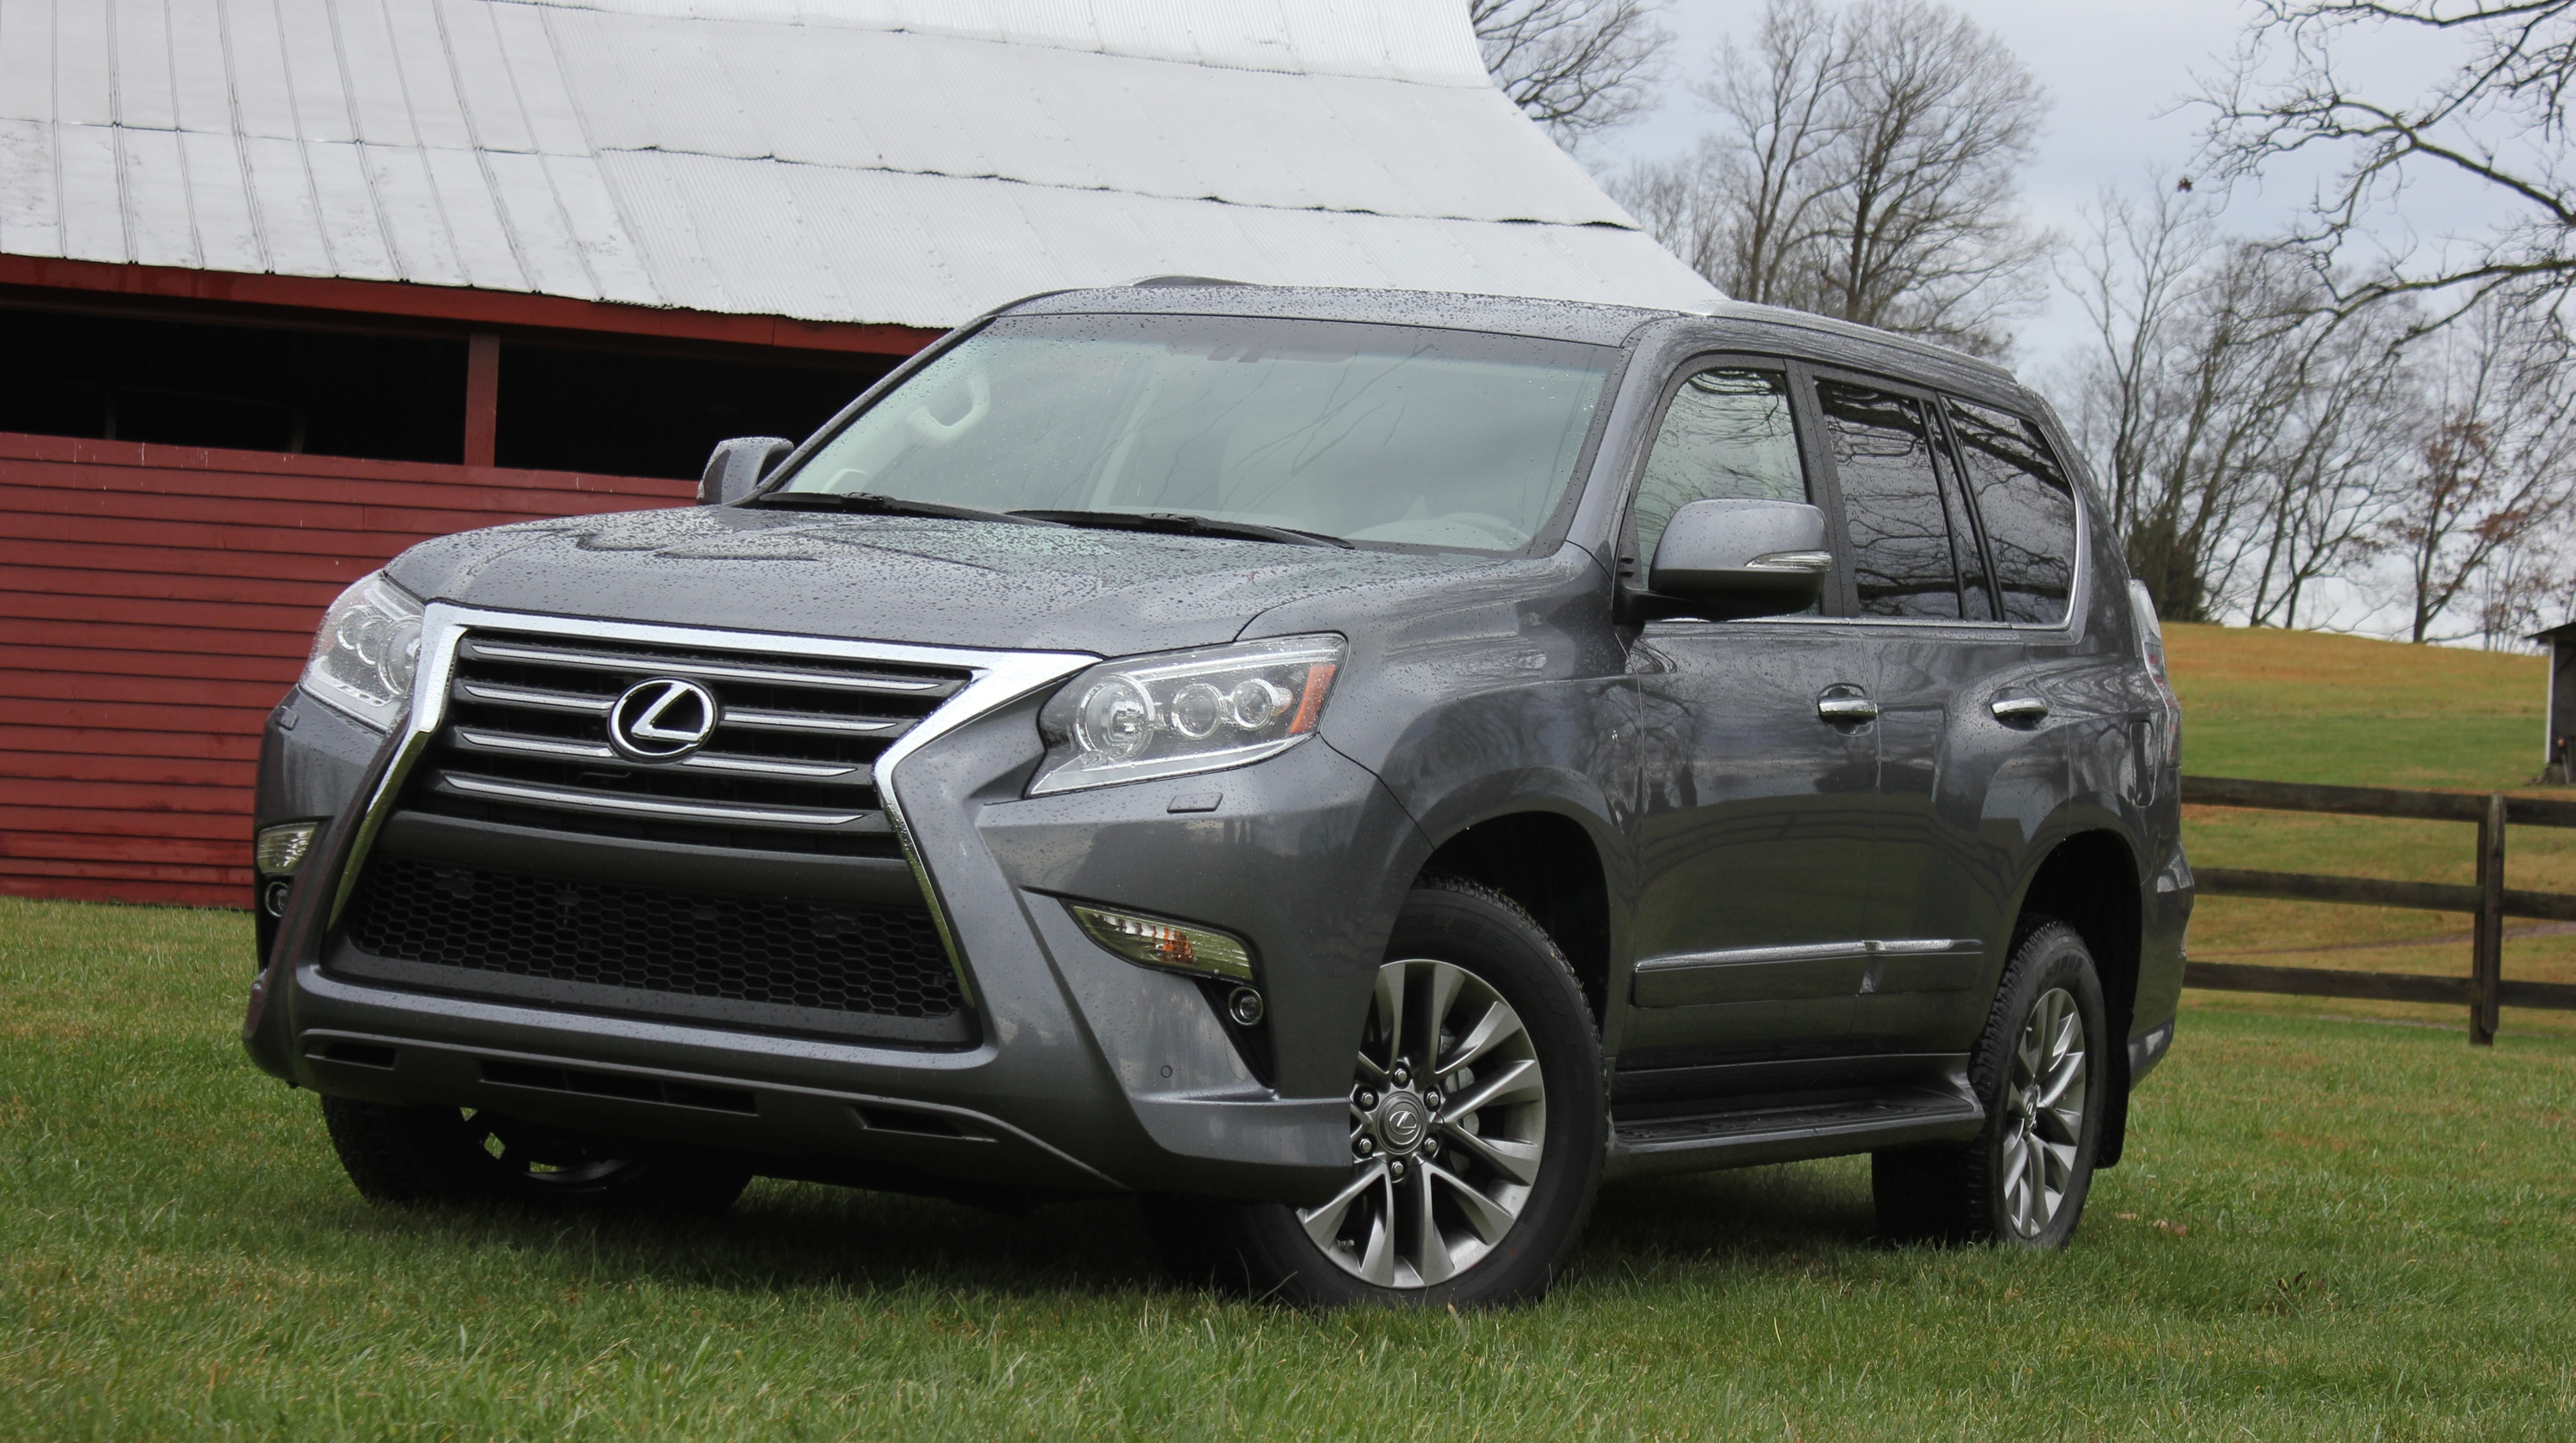 Lexus GX: Latest News, Reviews, Specifications, Prices